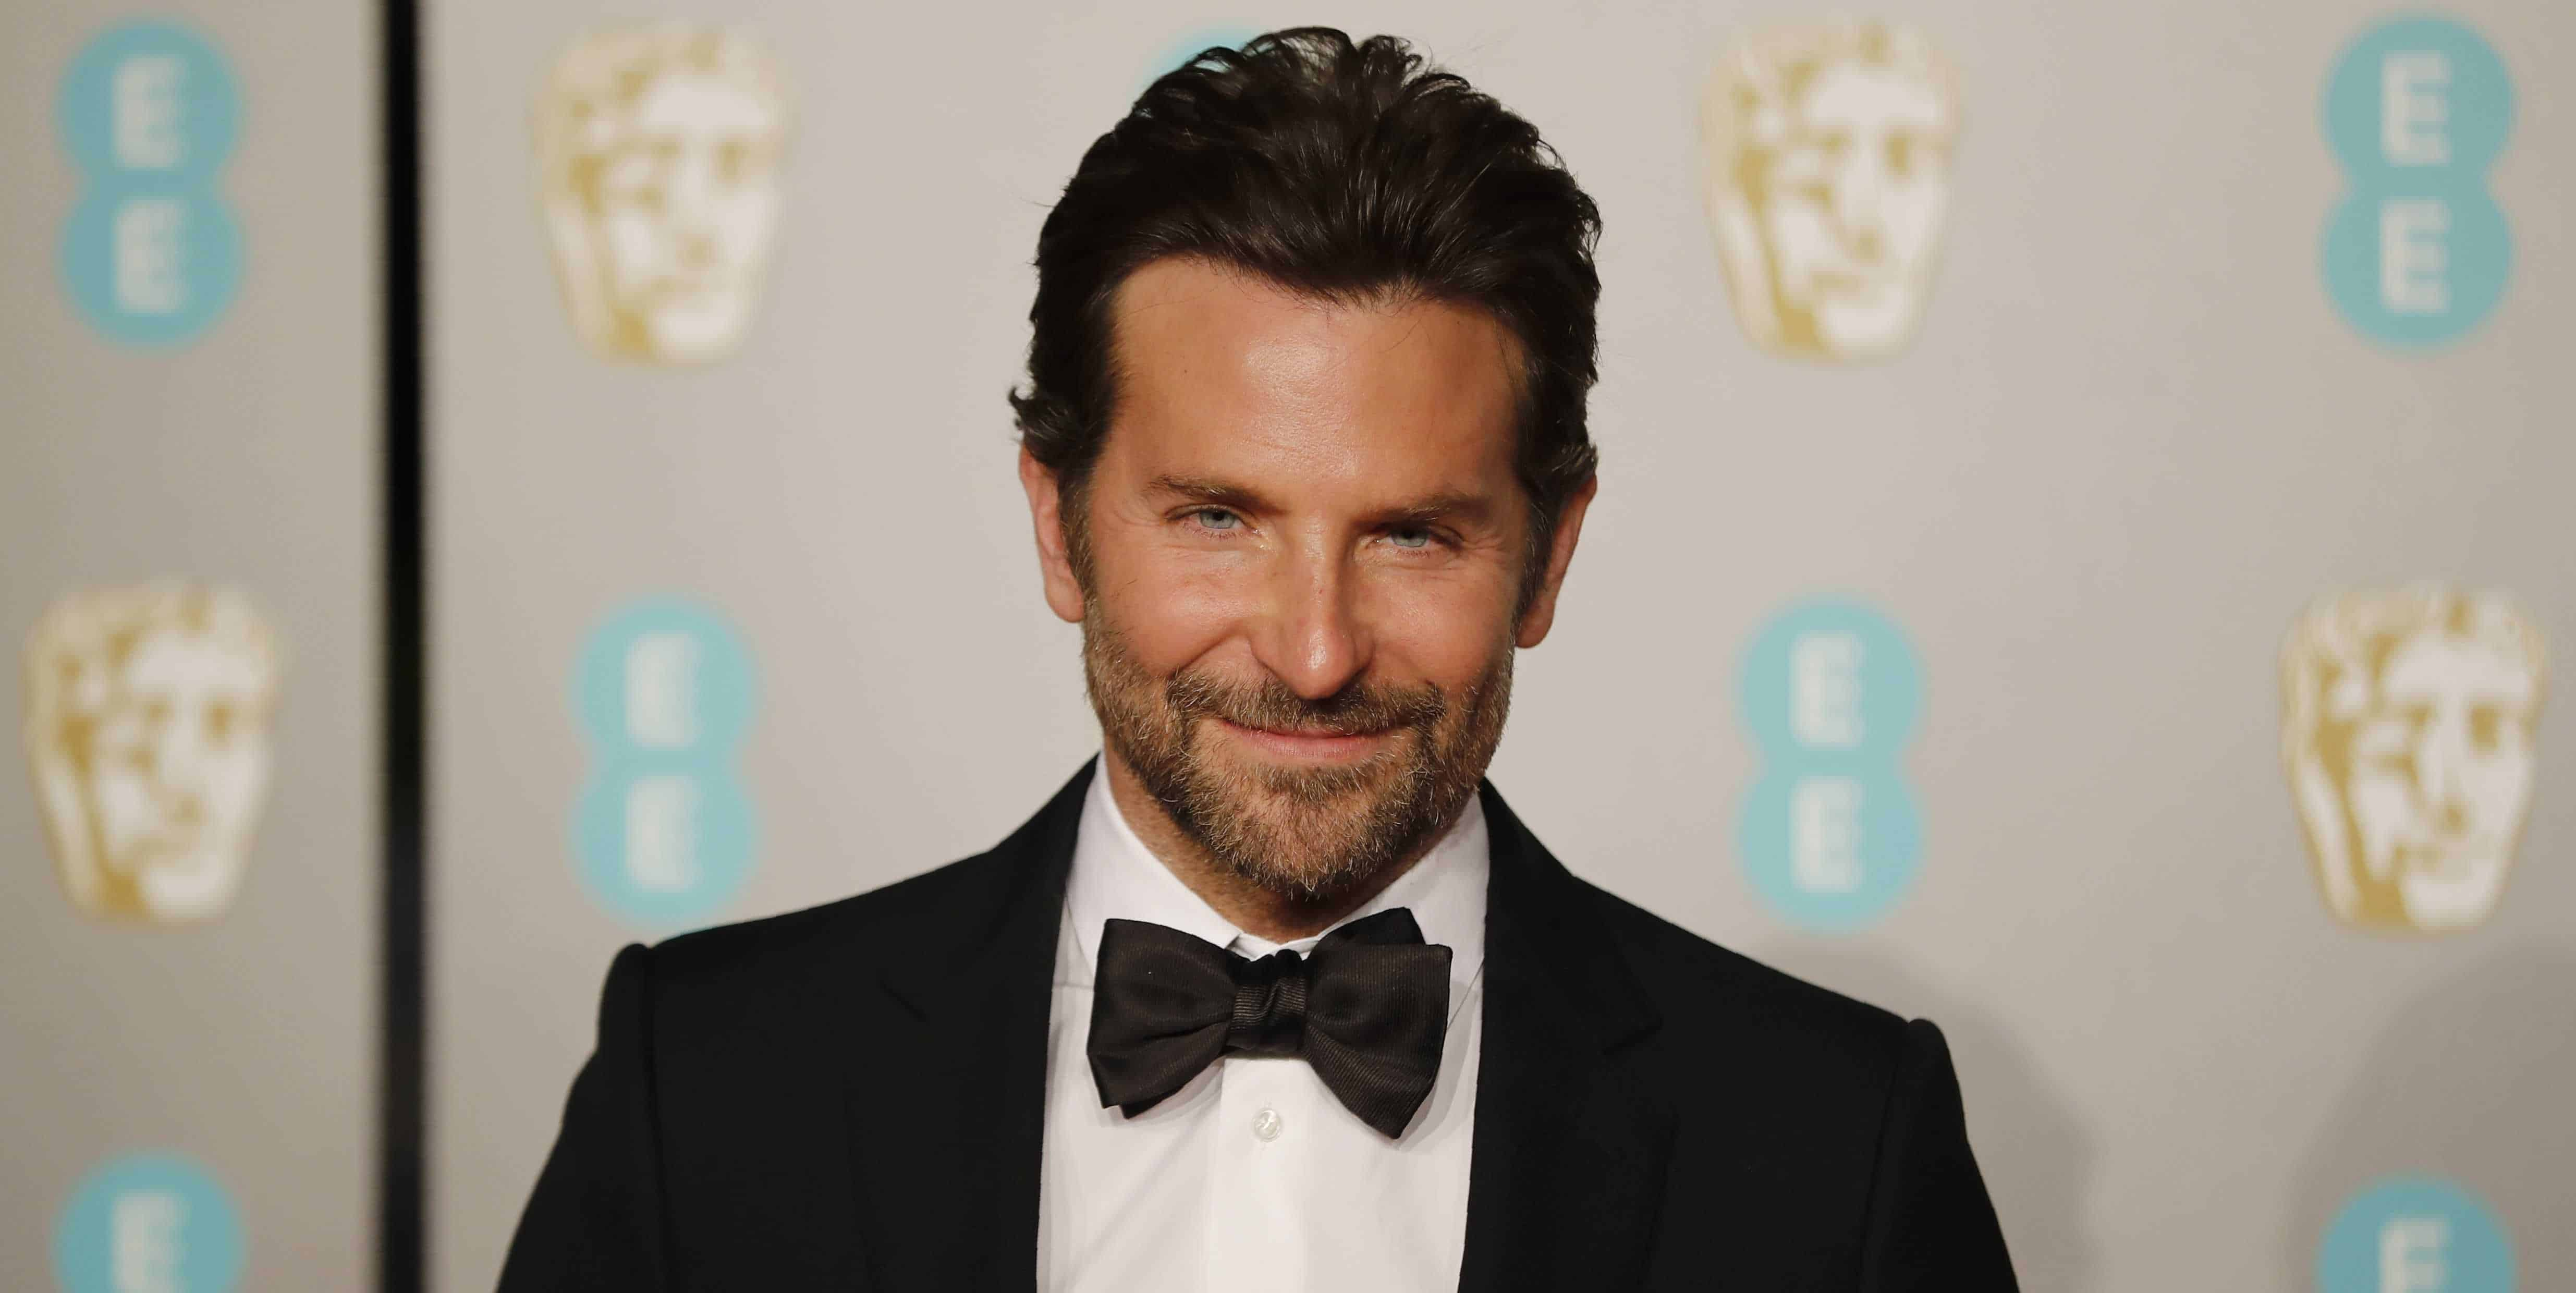 Bradley Cooper: Mr. Nominado